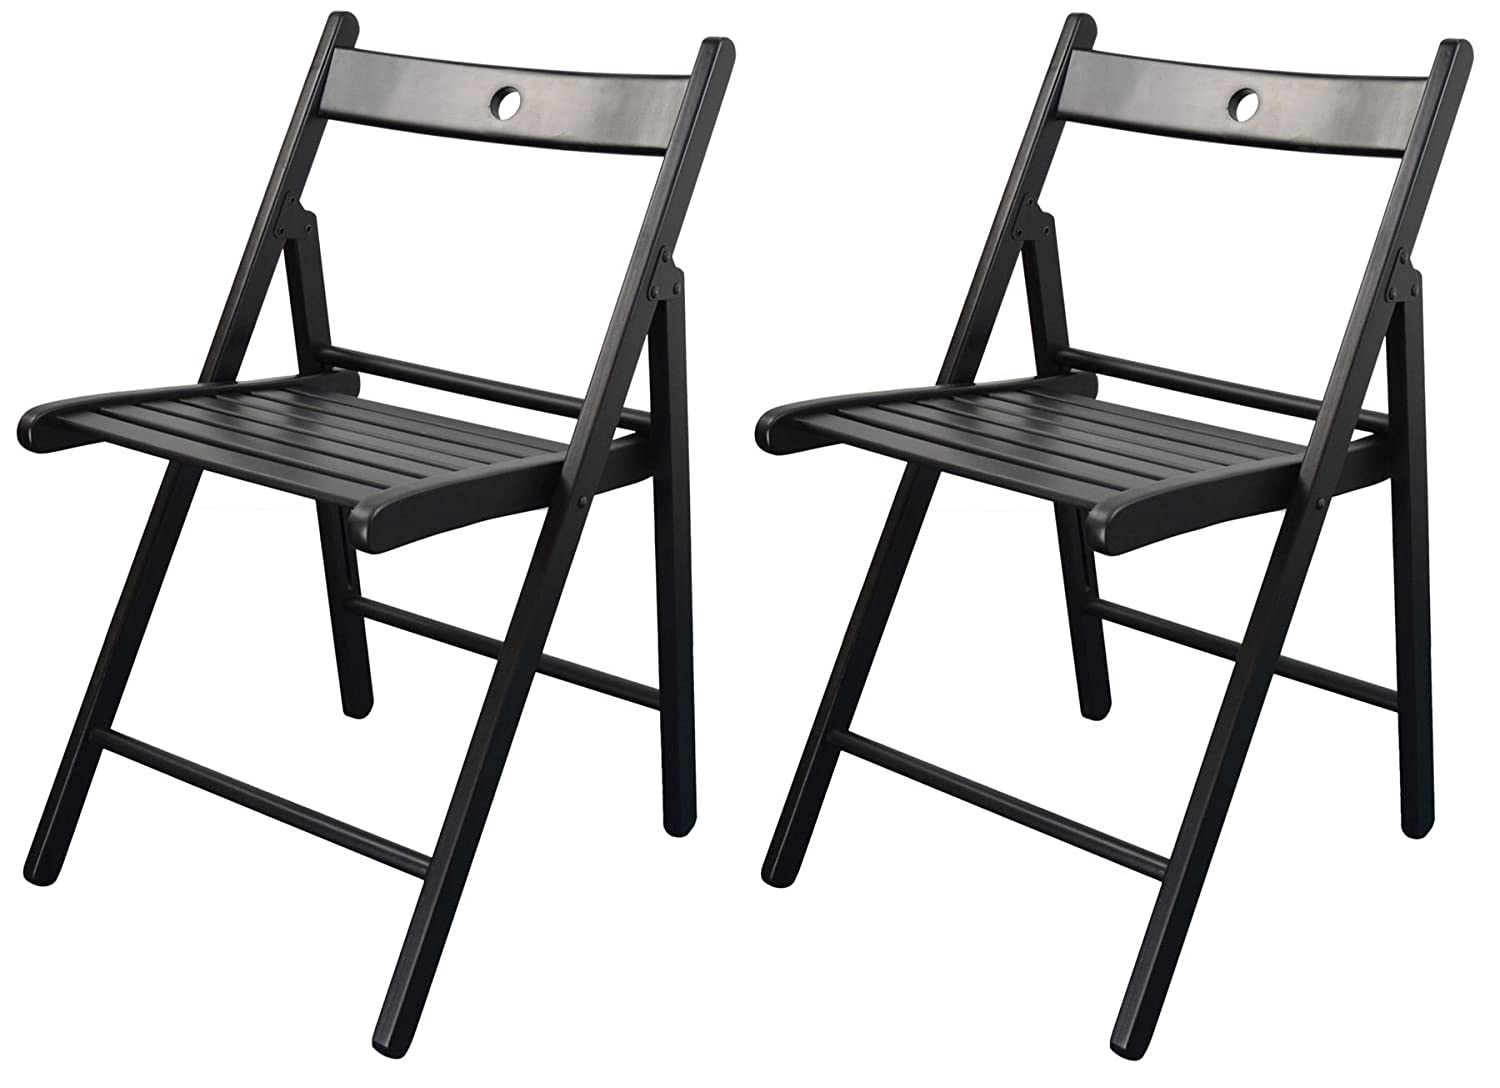 Harbour Housewares Wooden Folding Chairs - Black Wood Colour - Pack of 2…